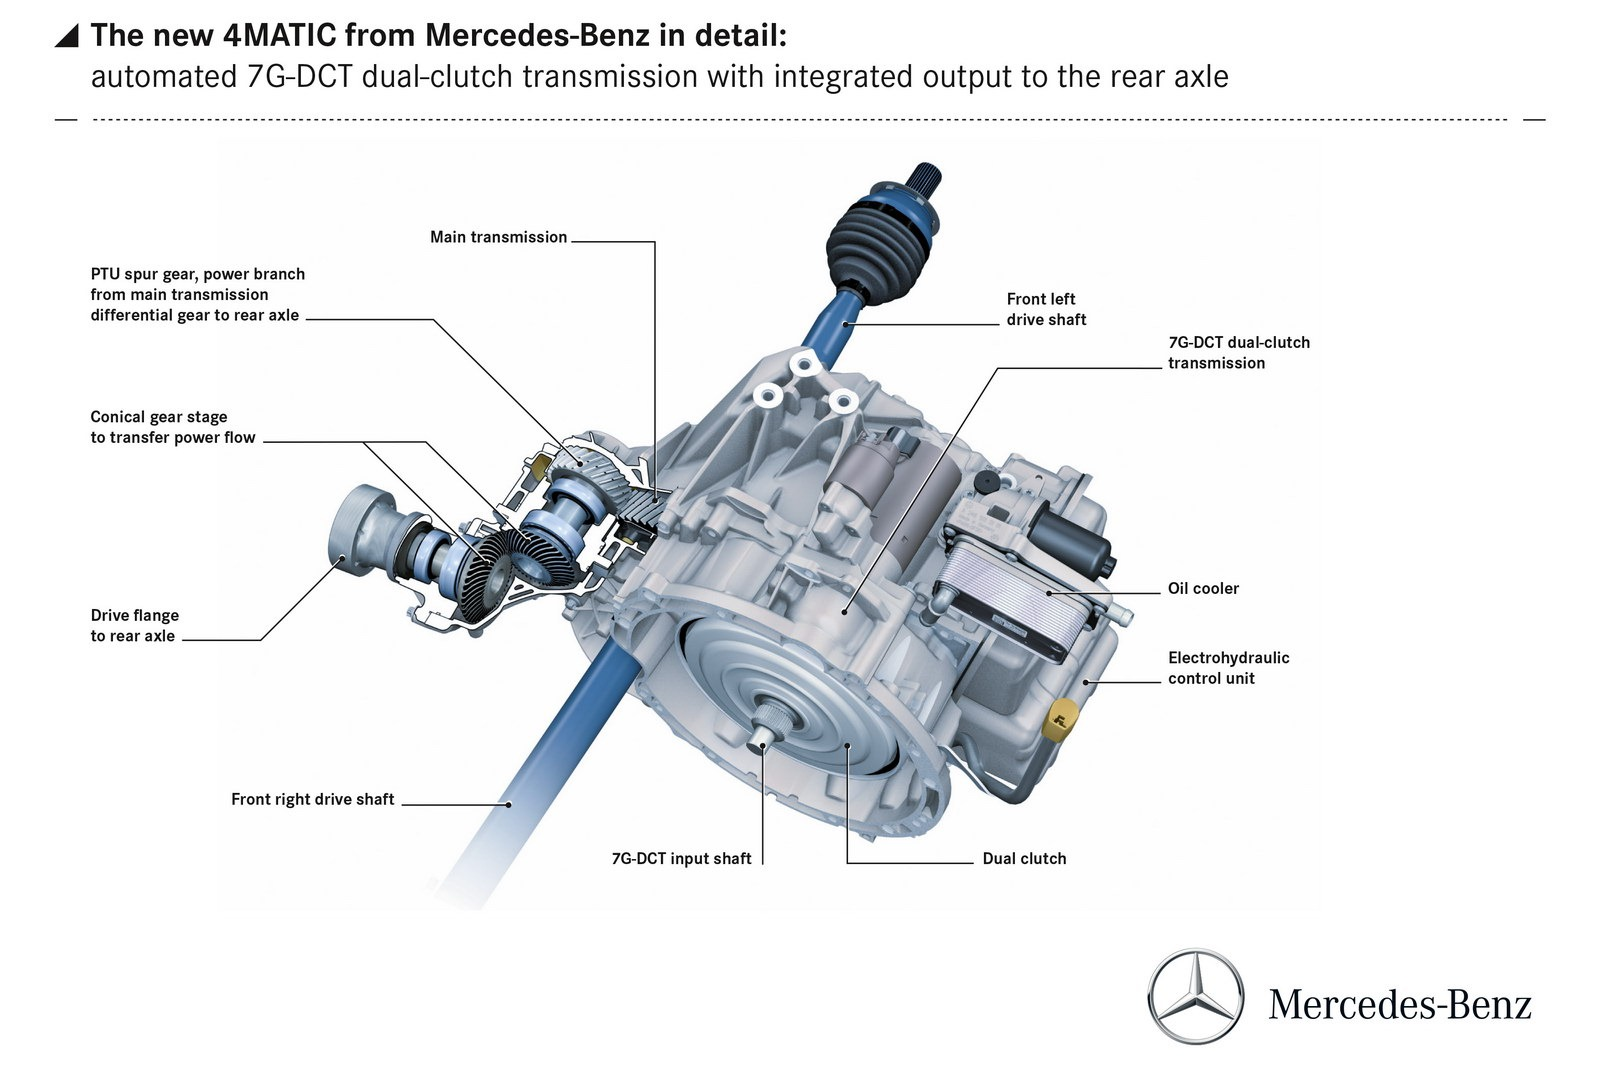 and details cla 4matic system from story mercedes details new 4matic